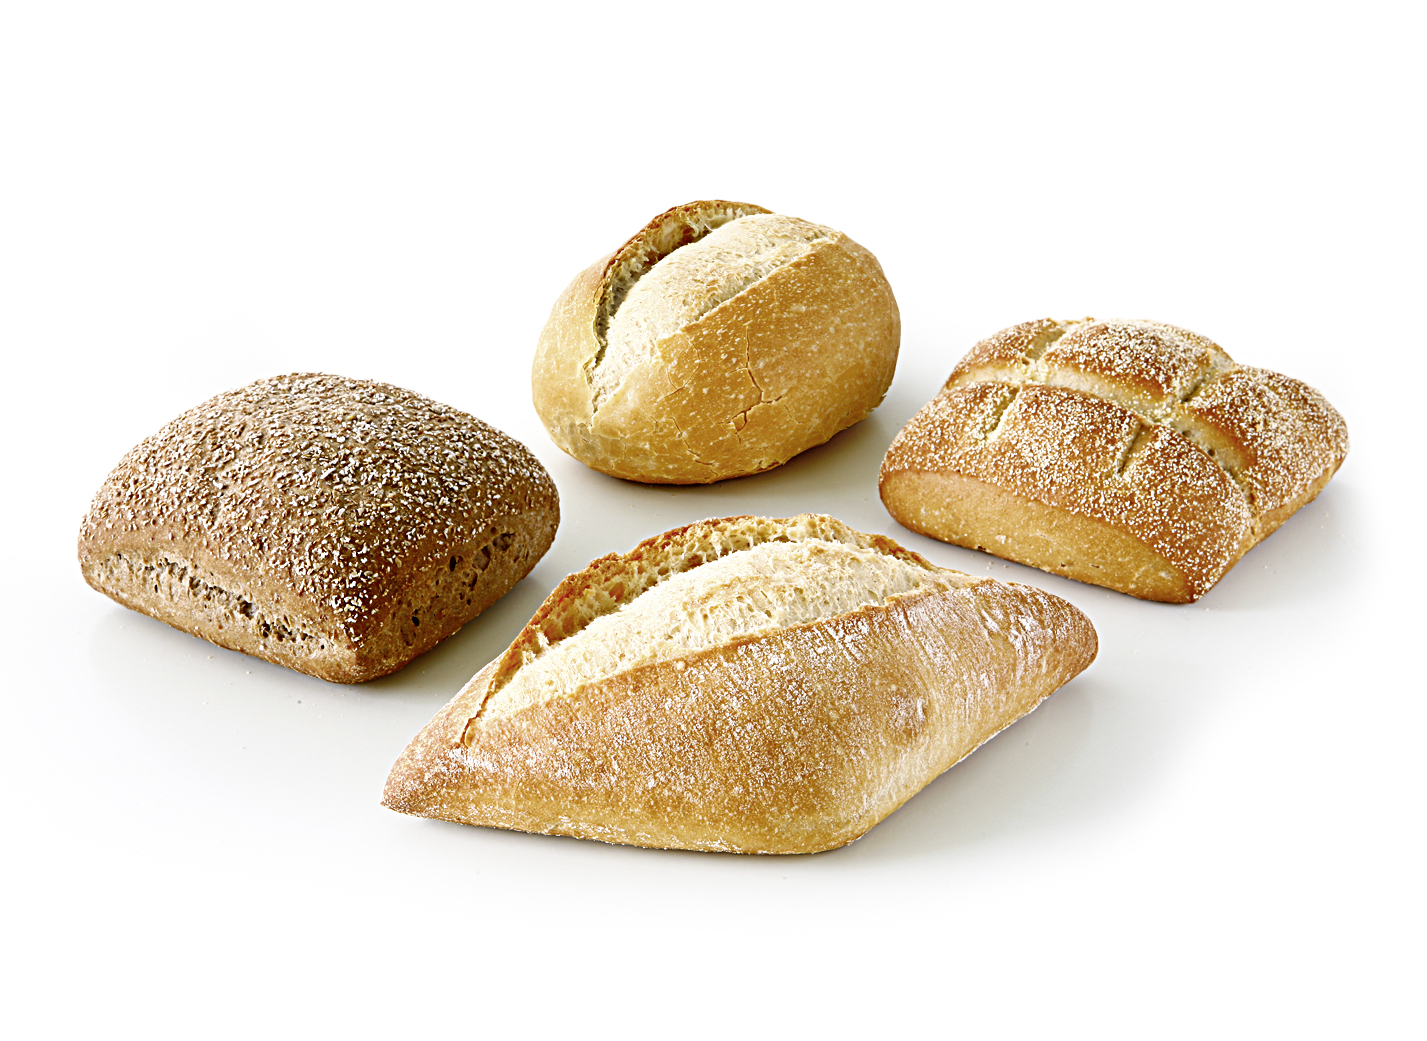 Roll Variety - XXL mix of the varieties: wheat roll, goldkrüstchen, tuscan roll and rye-farmer roll